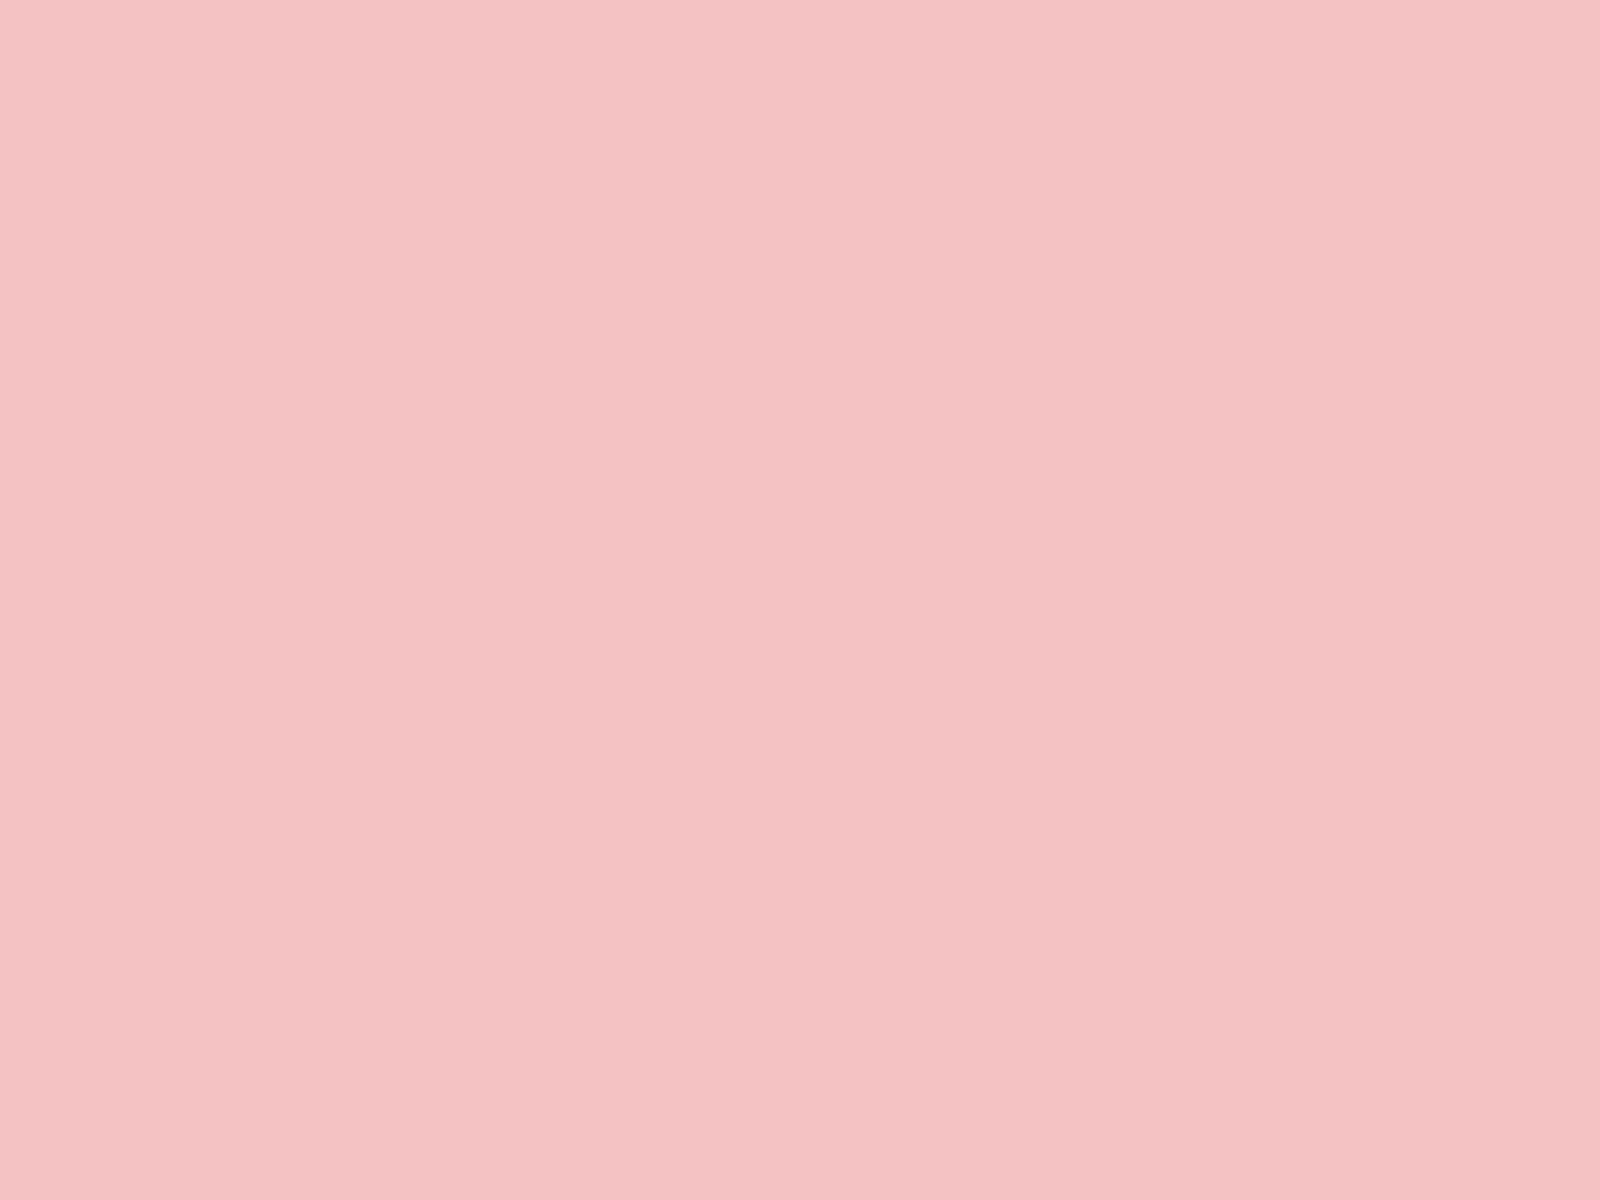 1600x1200 Baby Pink Solid Color Background